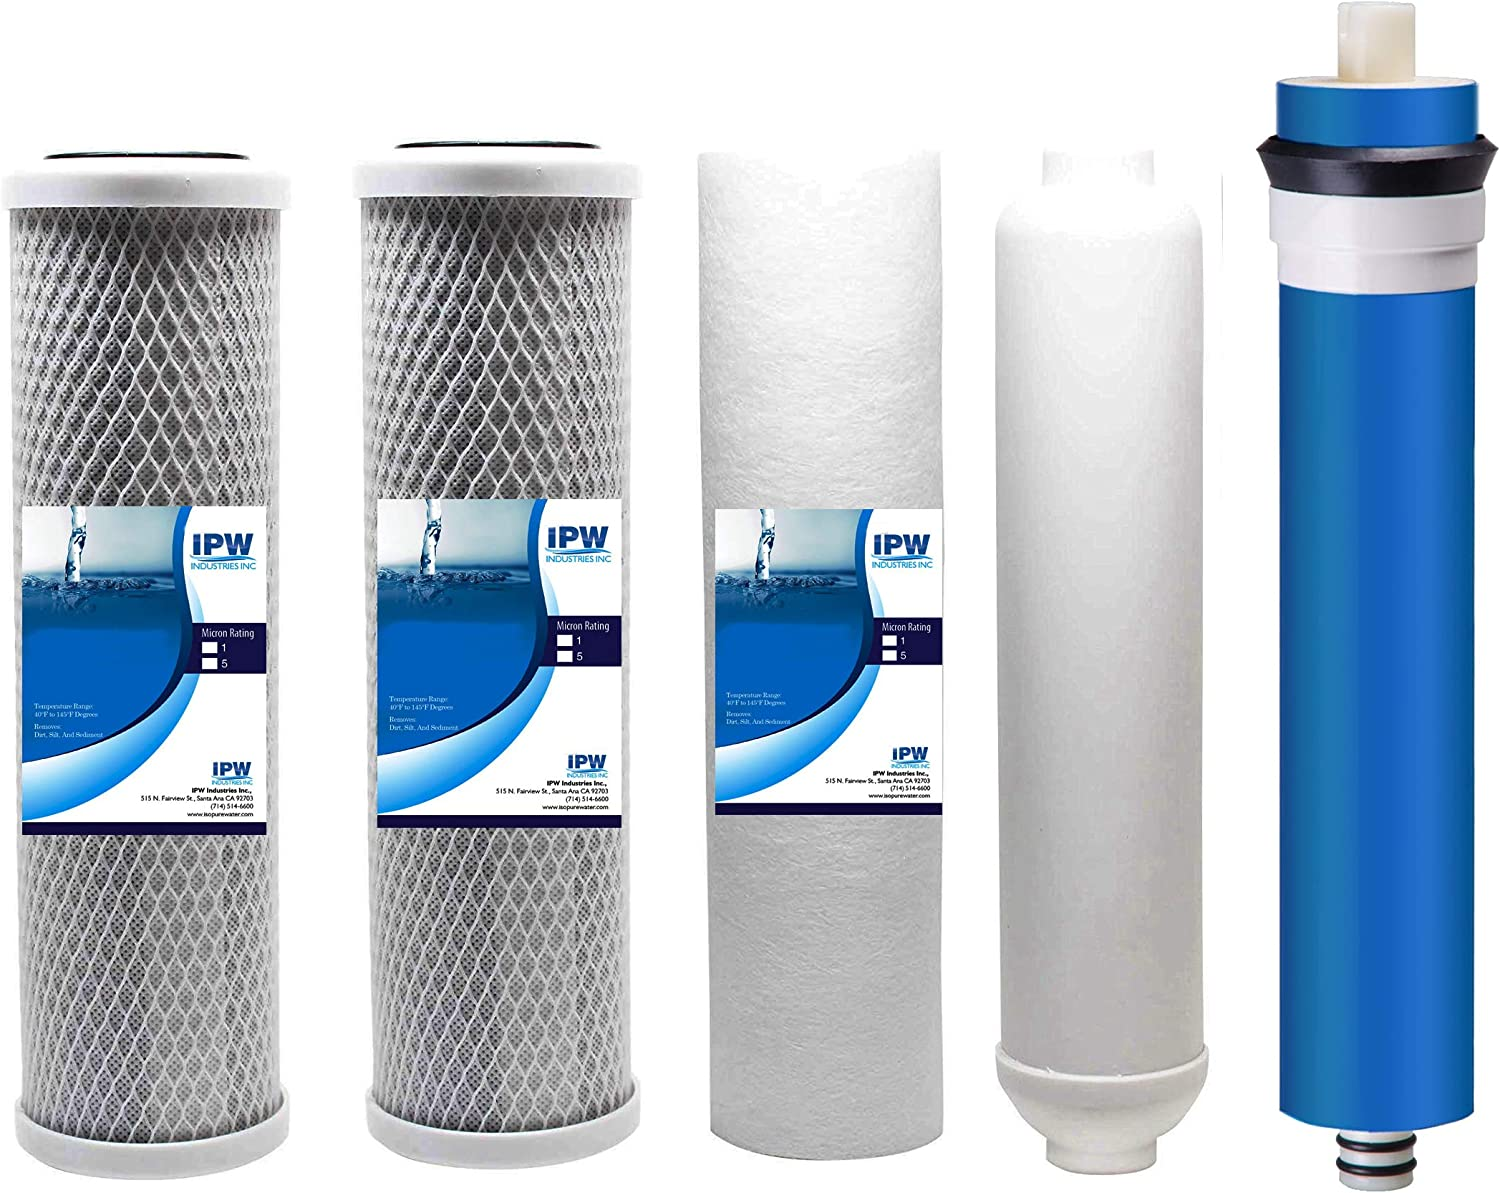 IPW Industries Inc Honeywell RO-9100 Compatible 5 Stage Reverse Osmosis Replacement Filter Bundle (50 GPD, Universal)